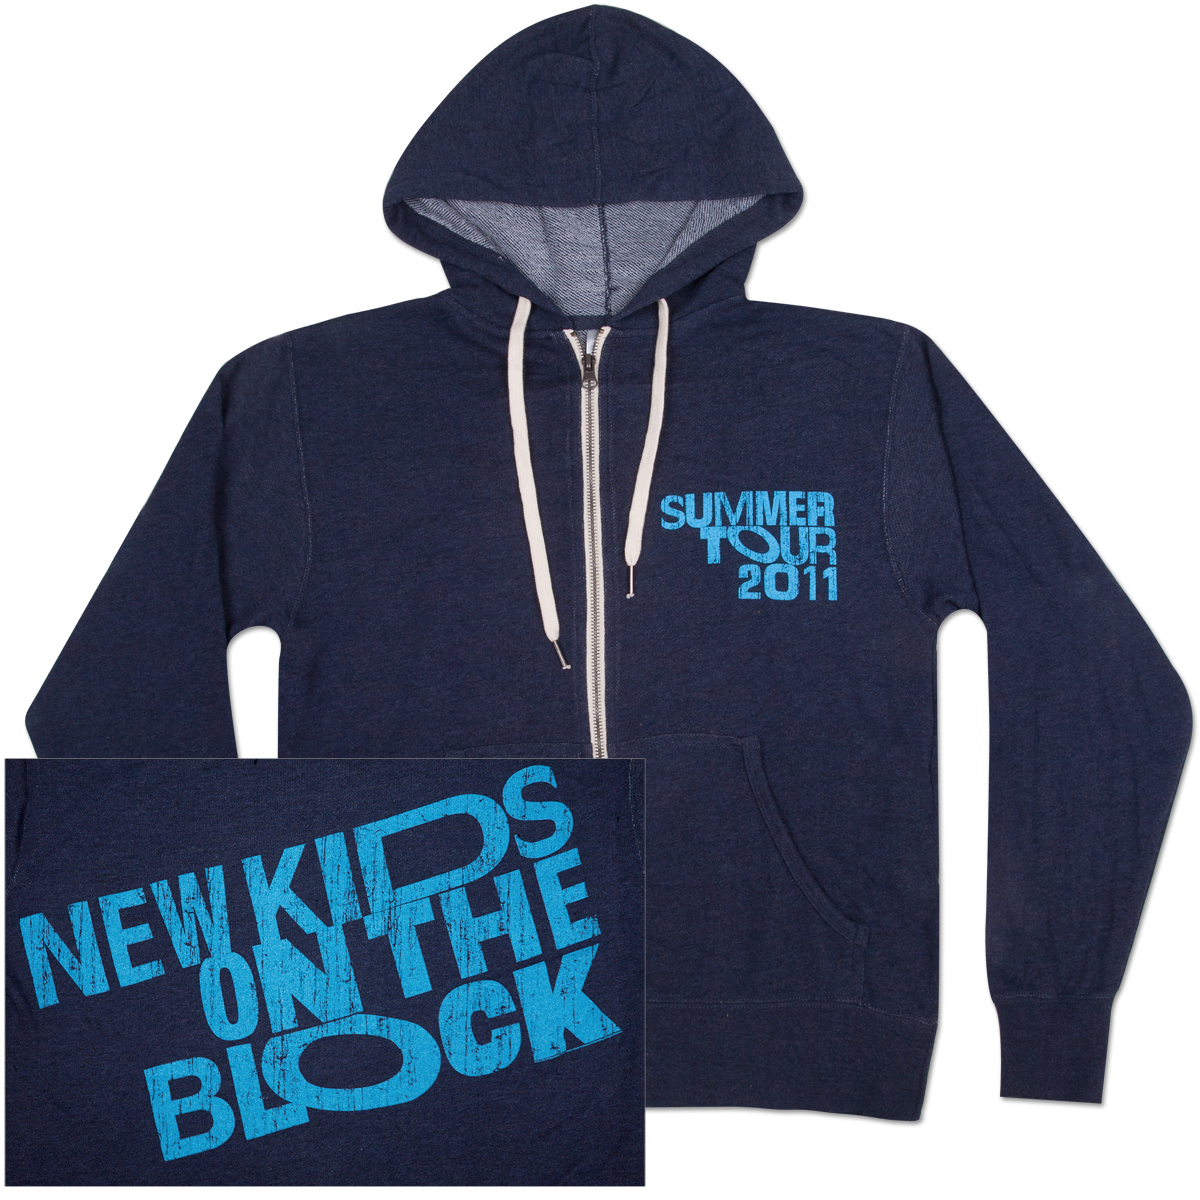 New Kids on the Block Summer Tour 2011 Hoodie